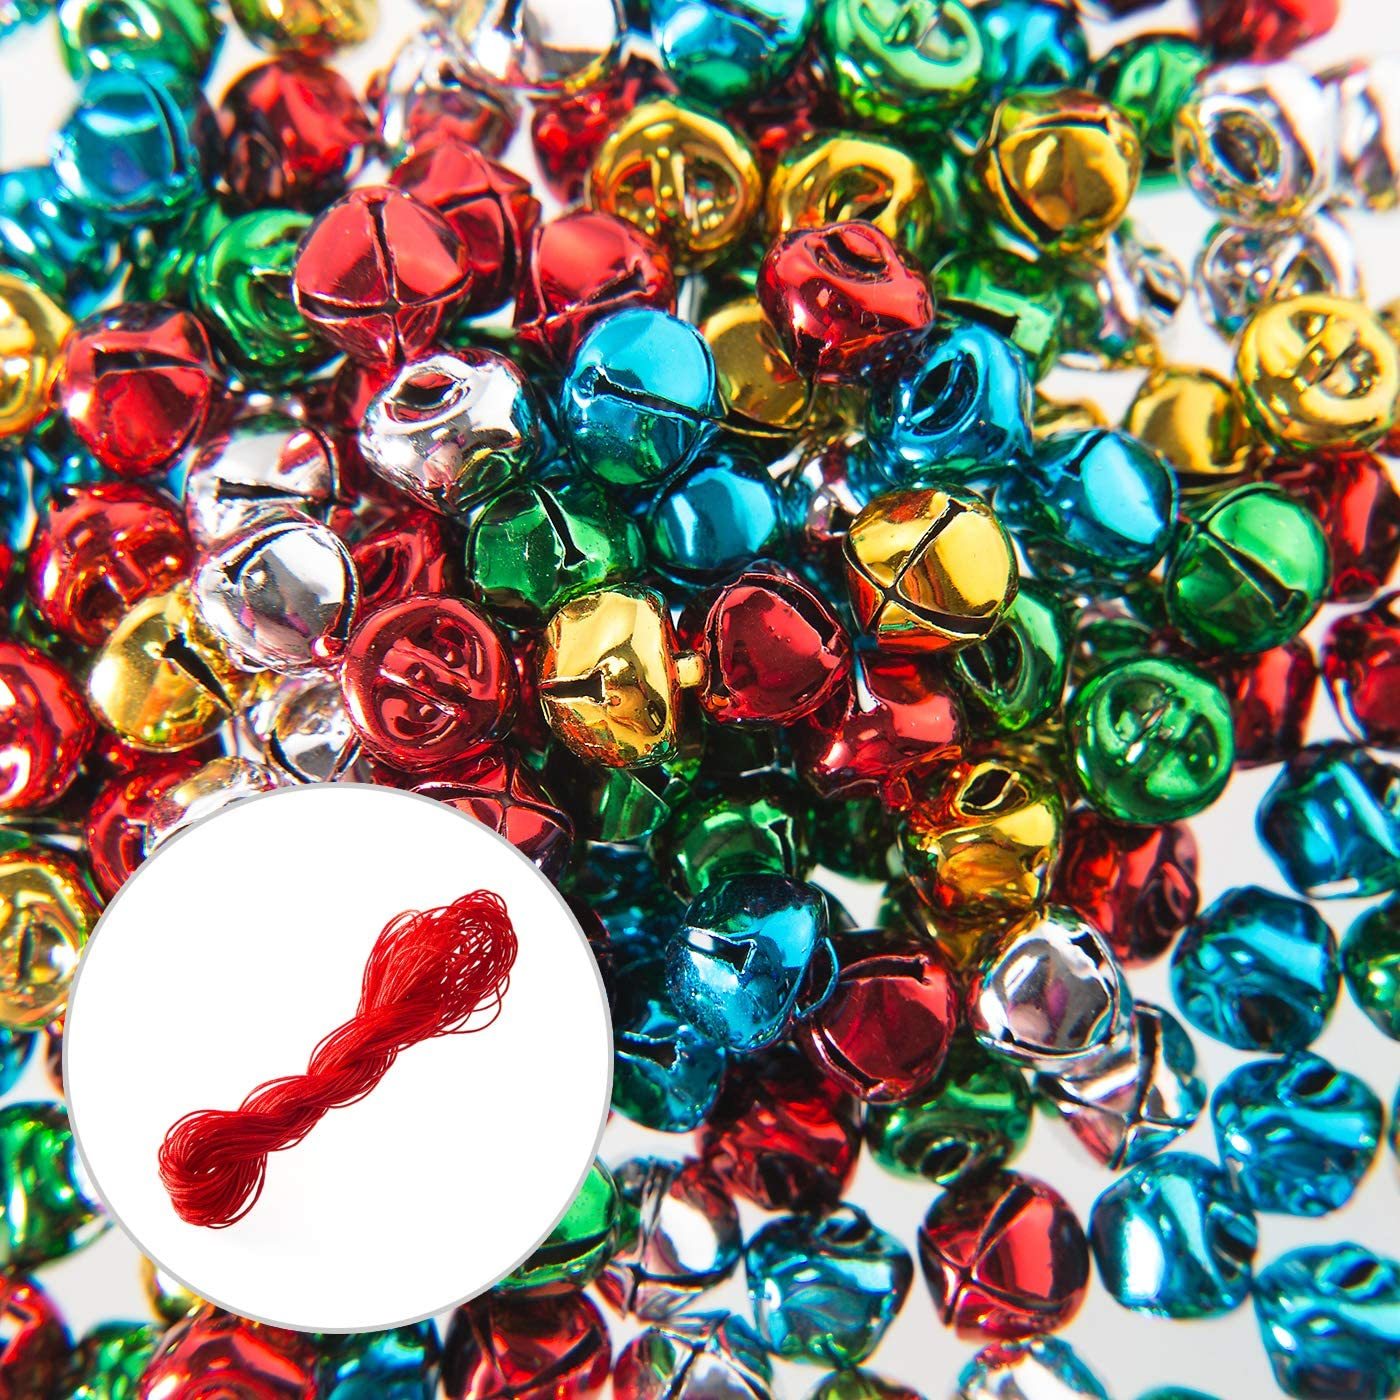 Random Color NUOBESTY 50pcs Plastic Jingle Bells Christmas Round Bell Mini Craft Bells for Christmas Festival DIT Kids Hand Rattle Bells Accessories